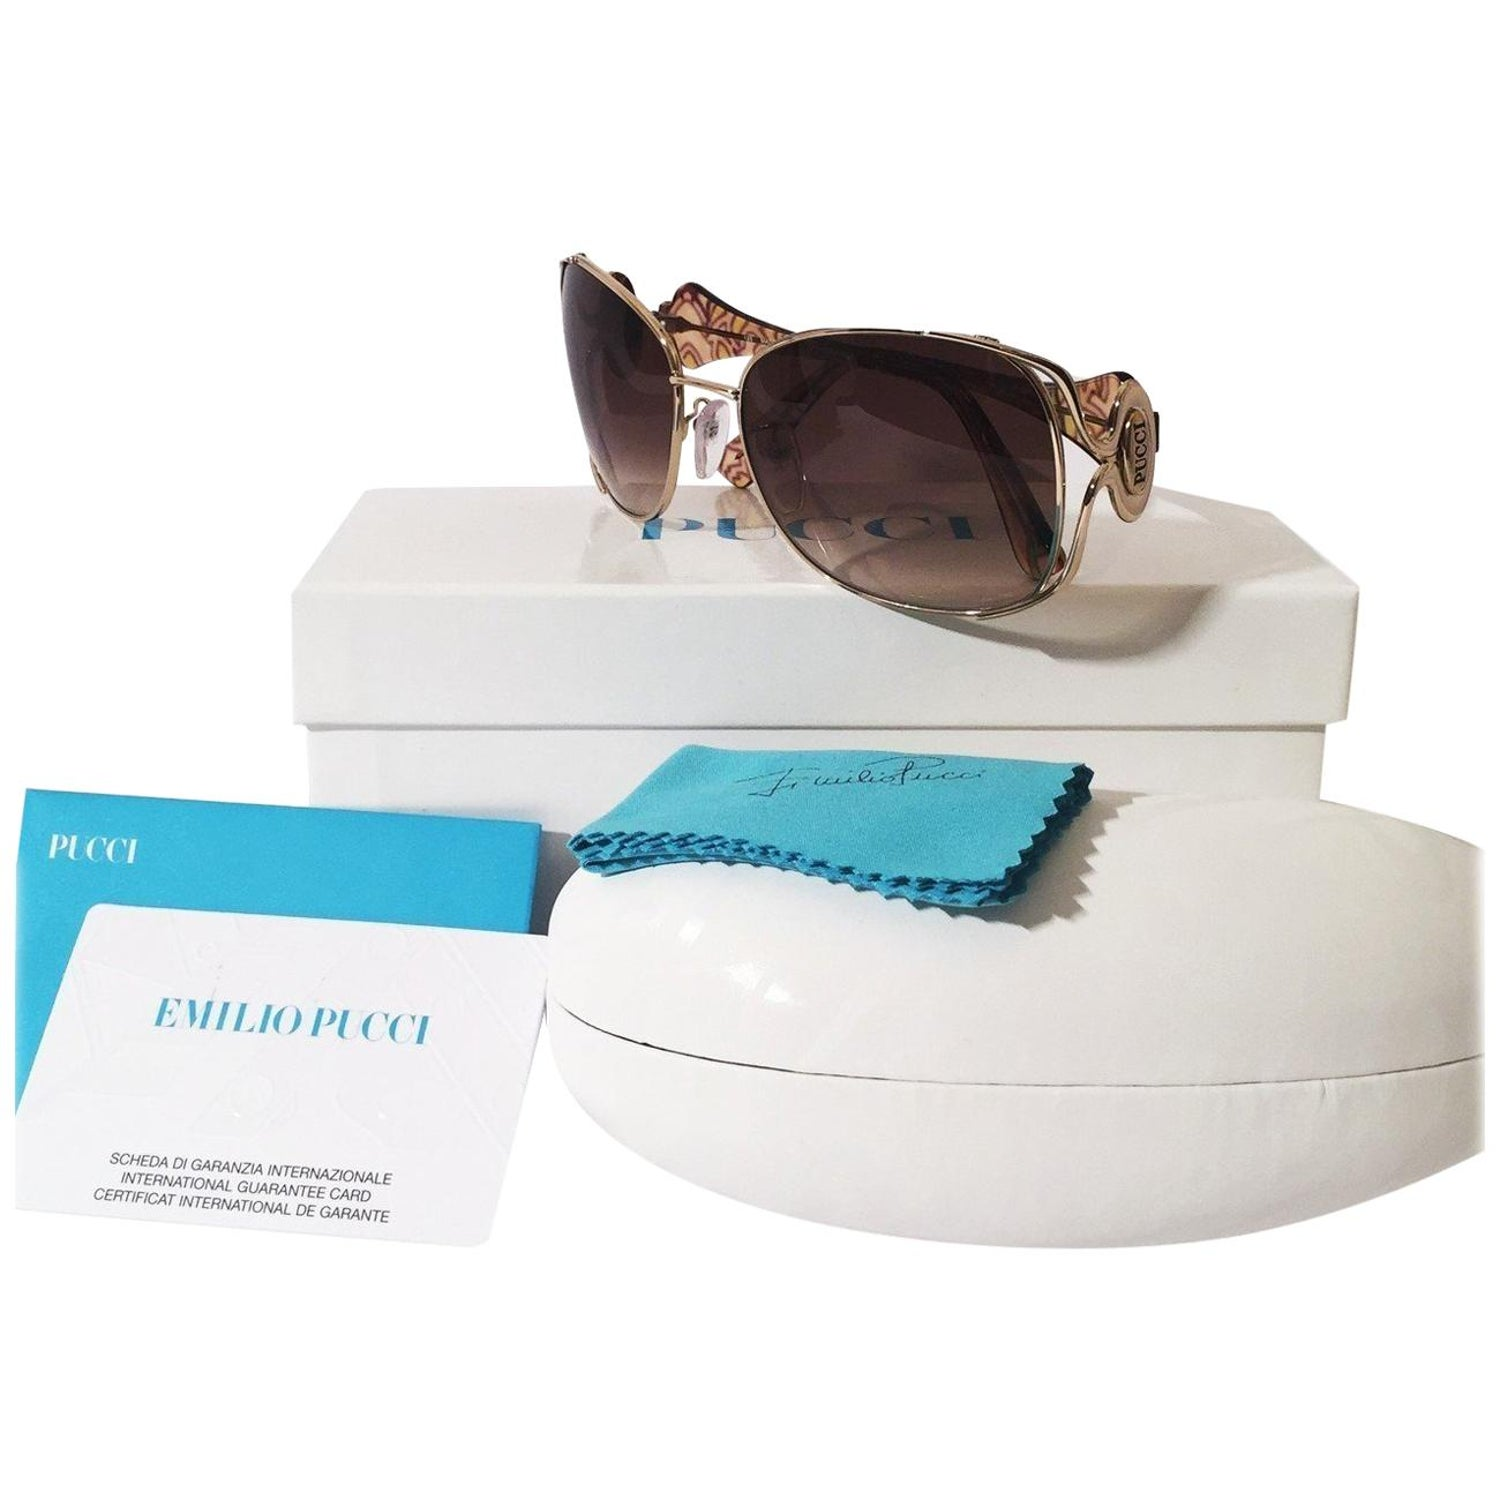 e9364040e8 New Emilio Pucci Gold Aviator Sunglasses With Case and Box For Sale at  1stdibs